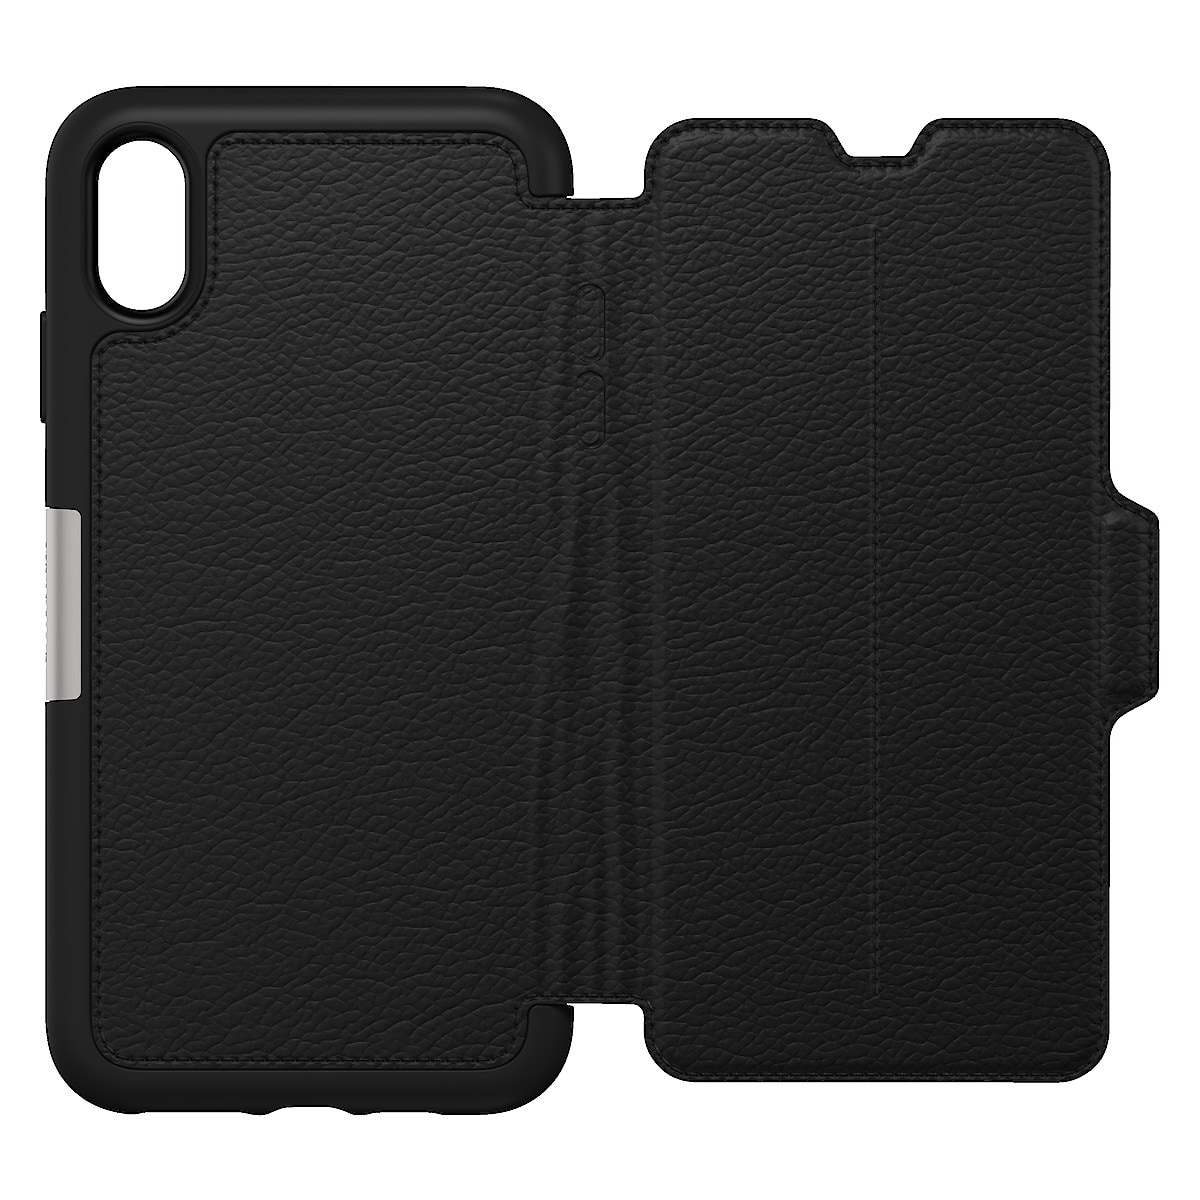 Otterbox Strada Wallet Case for iPhone XS Max